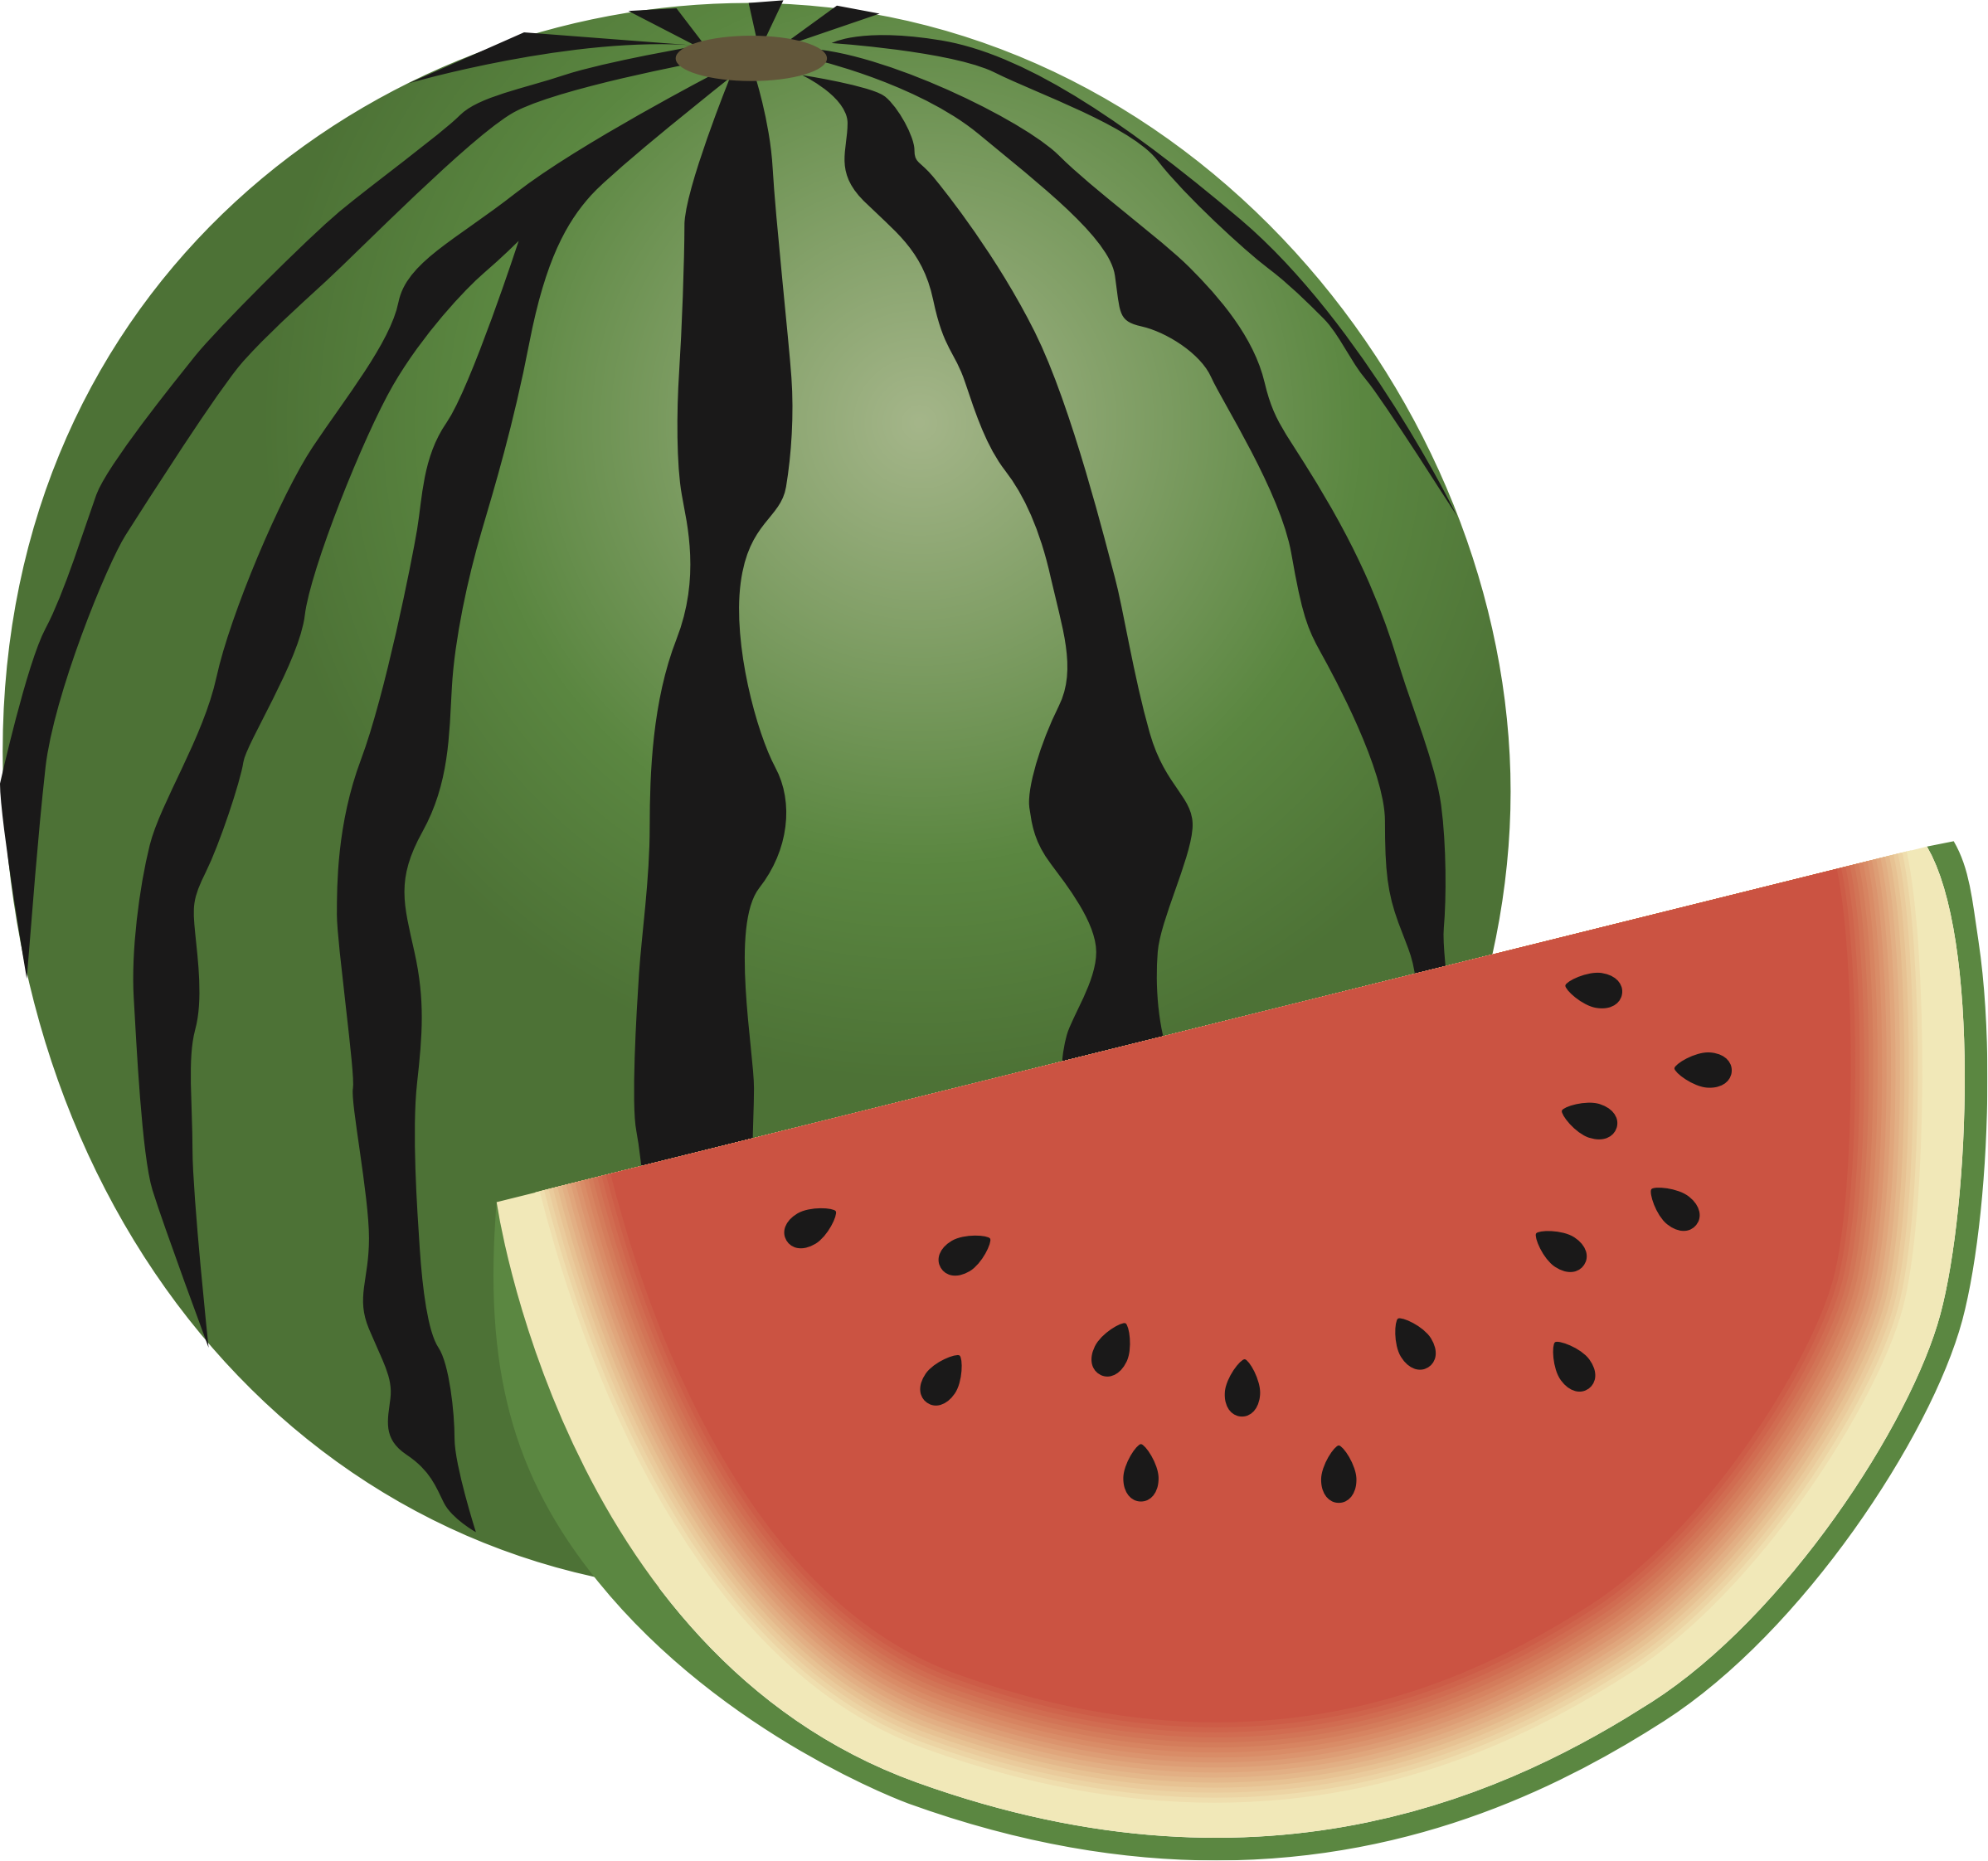 Watermelon clipart whole. Big image png